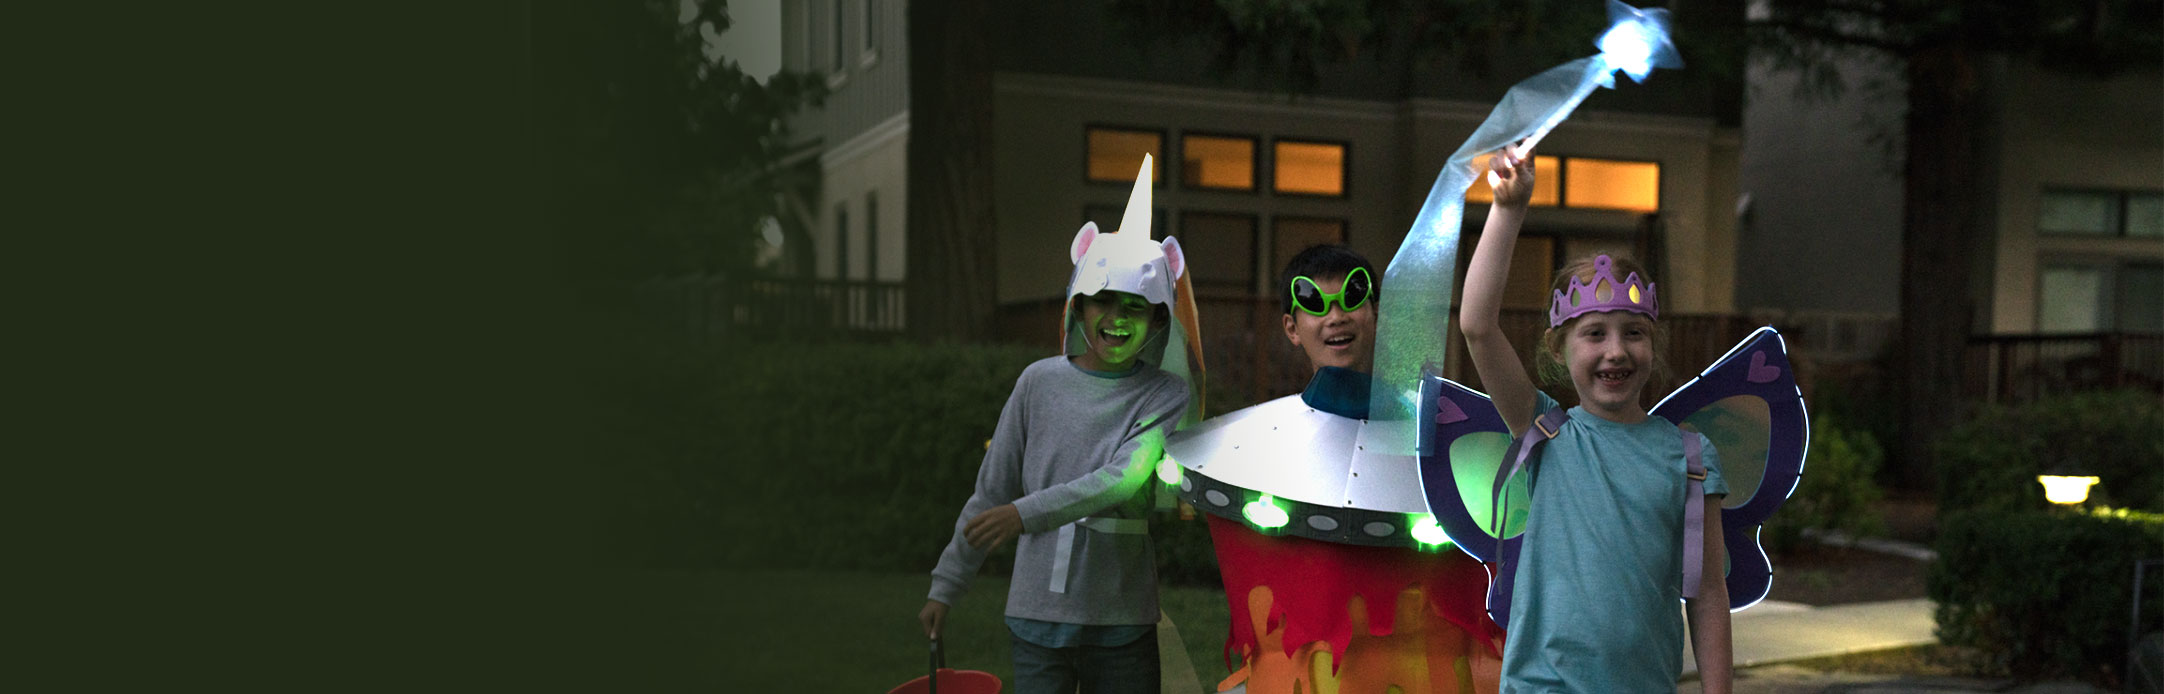 Kids walking on the street in KiwiCo's do-it-yourself Halloween costumes as a dinosaur, unicorn, UFO, and light-up wings.